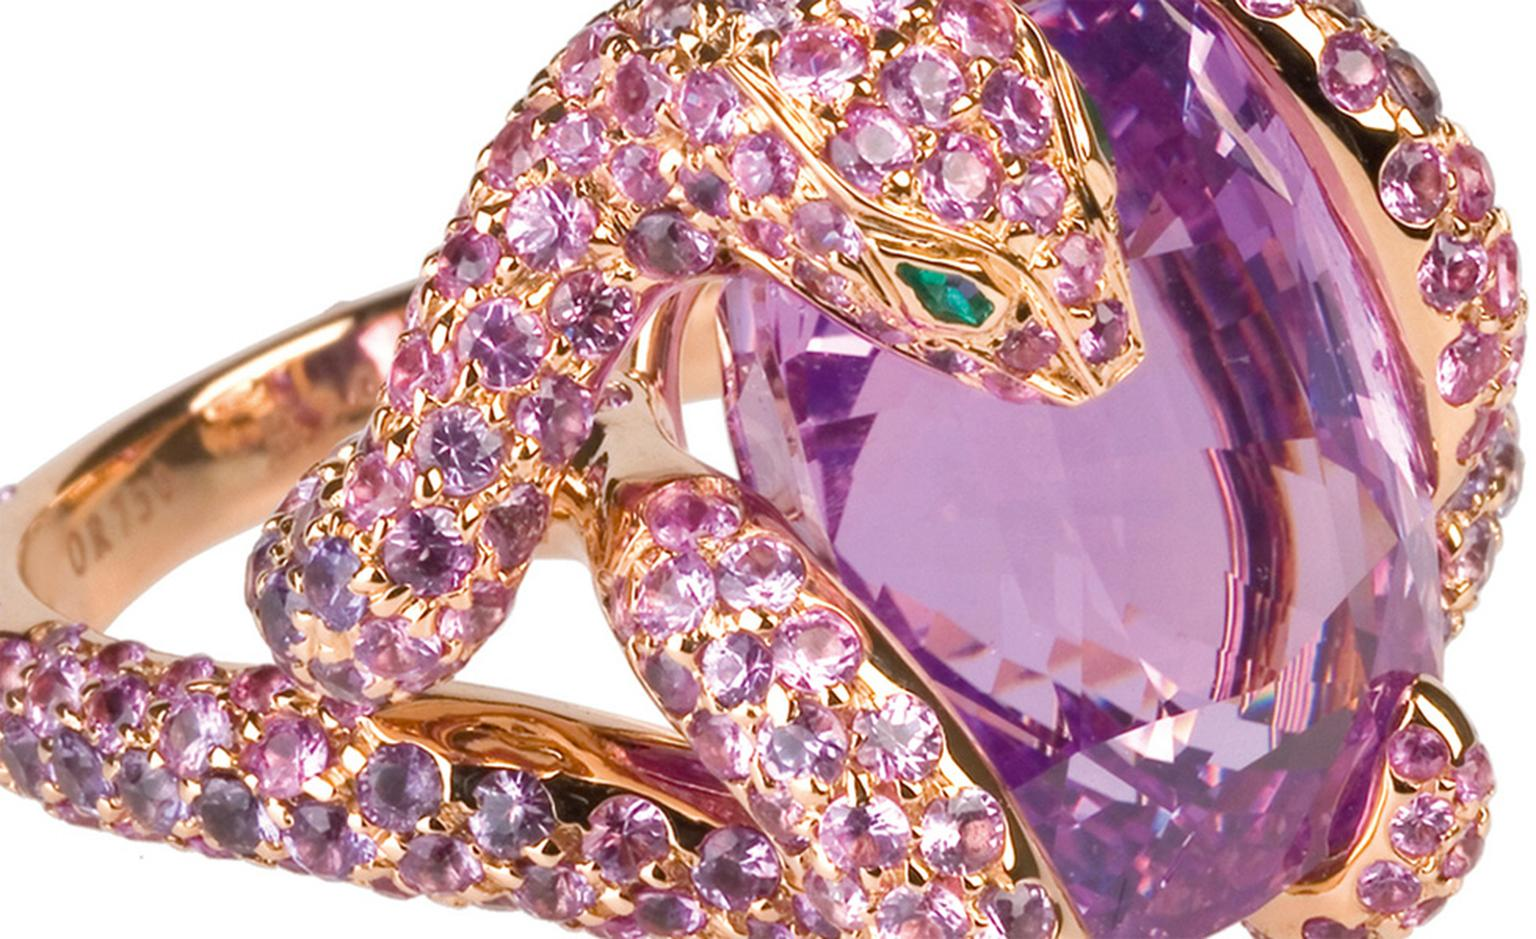 Boucheron Python ring with a pink Ceylon cushion-cut sapphire. The snake's body is embellished with almost 400 pink and purple sapphires.